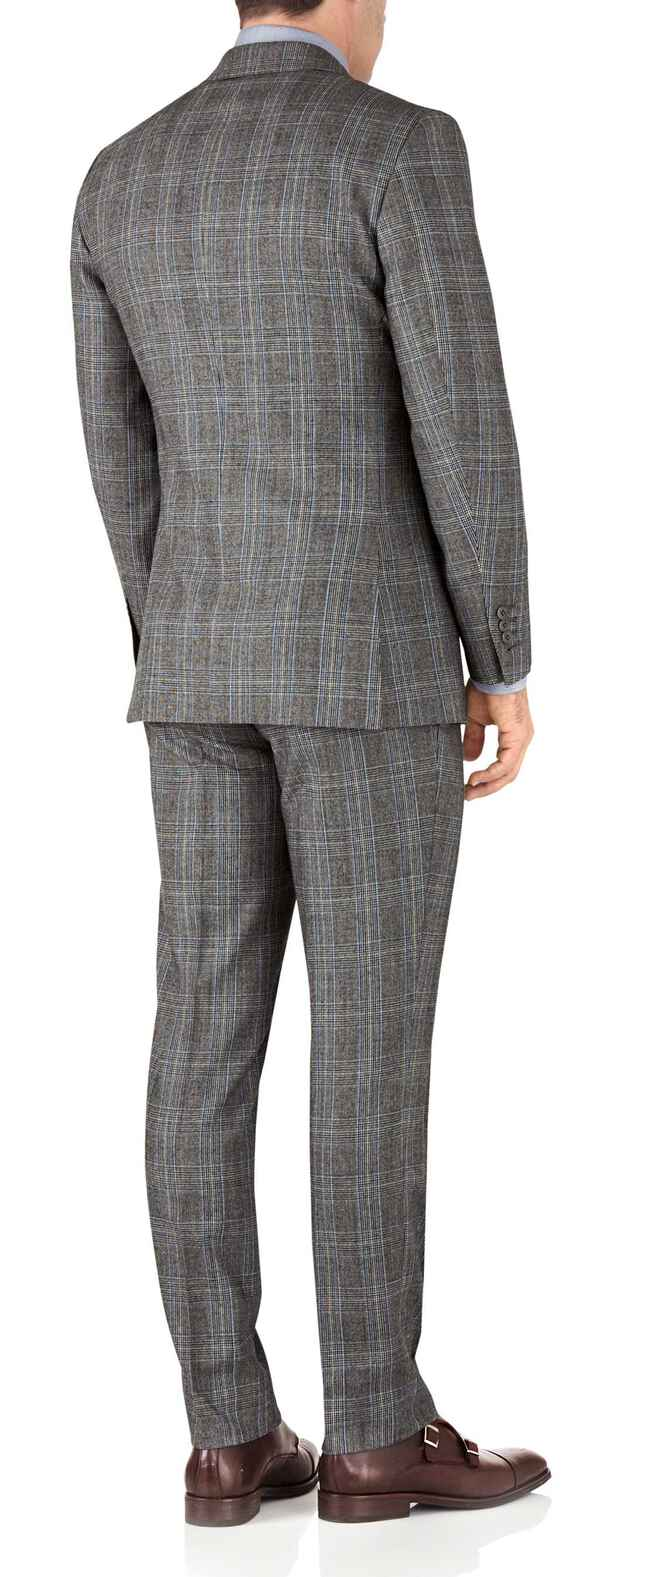 Slim Fit Business Anzug aus Flanell in Silber mit Prince-of-Wales-Karos